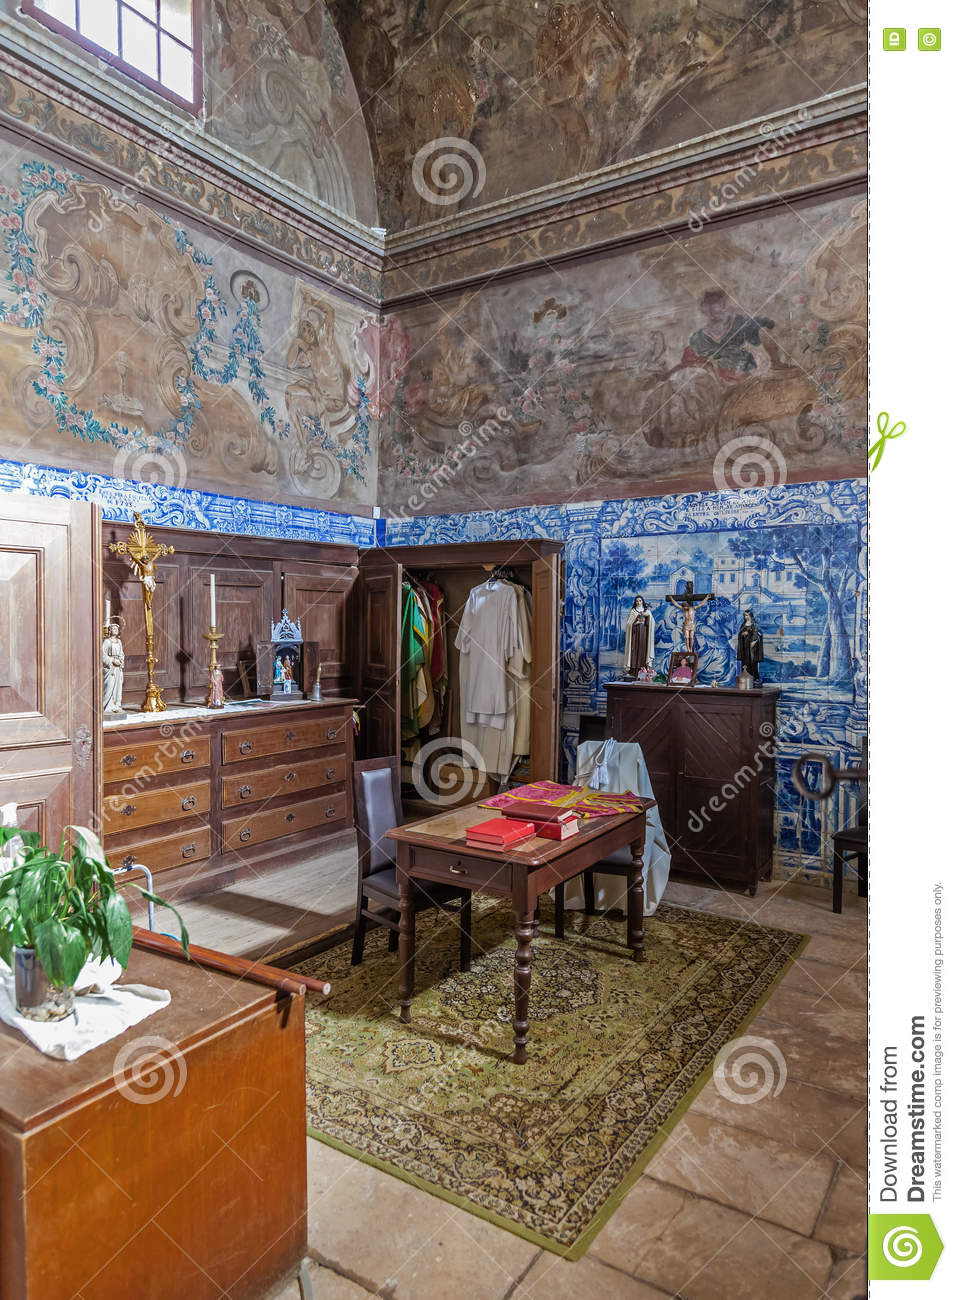 The baroque sacristy with blue tiles and frescos painted in the the baroque sacristy with blue tiles and frescos painted in the walls and ceiling dailygadgetfo Image collections